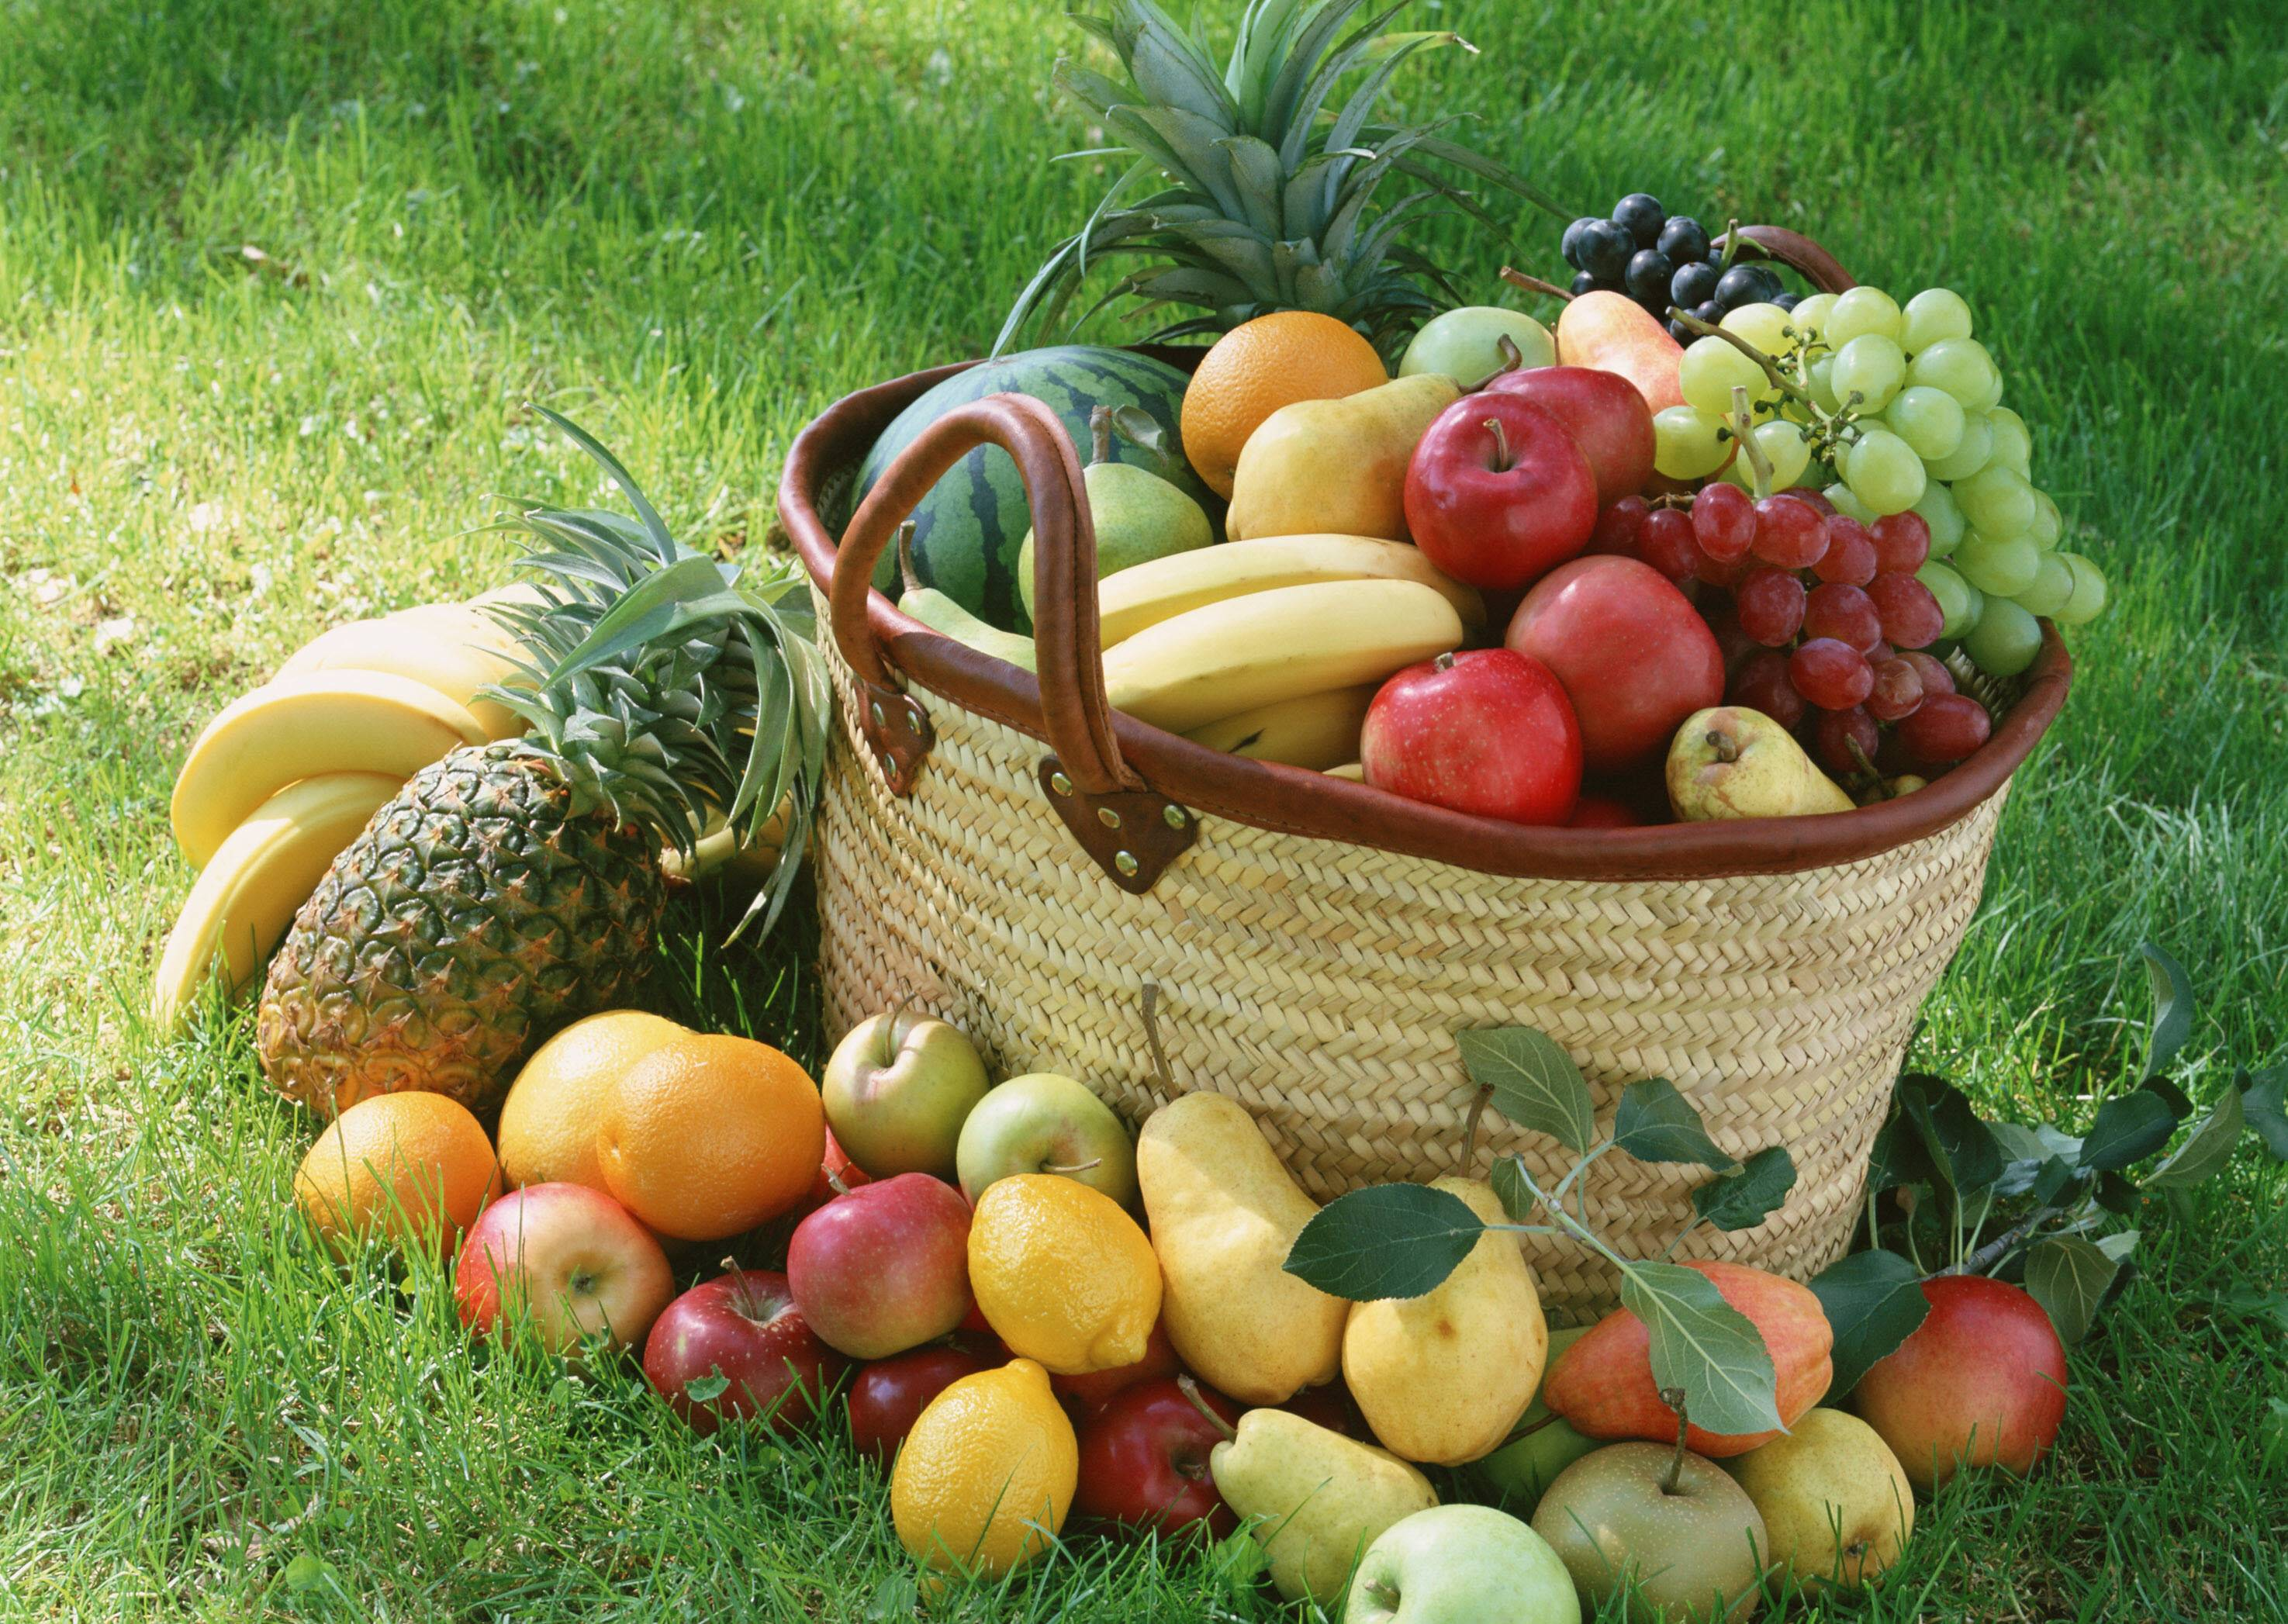 Fruits hd images - Fruits Wallpaper Ibackgroundwallpaper